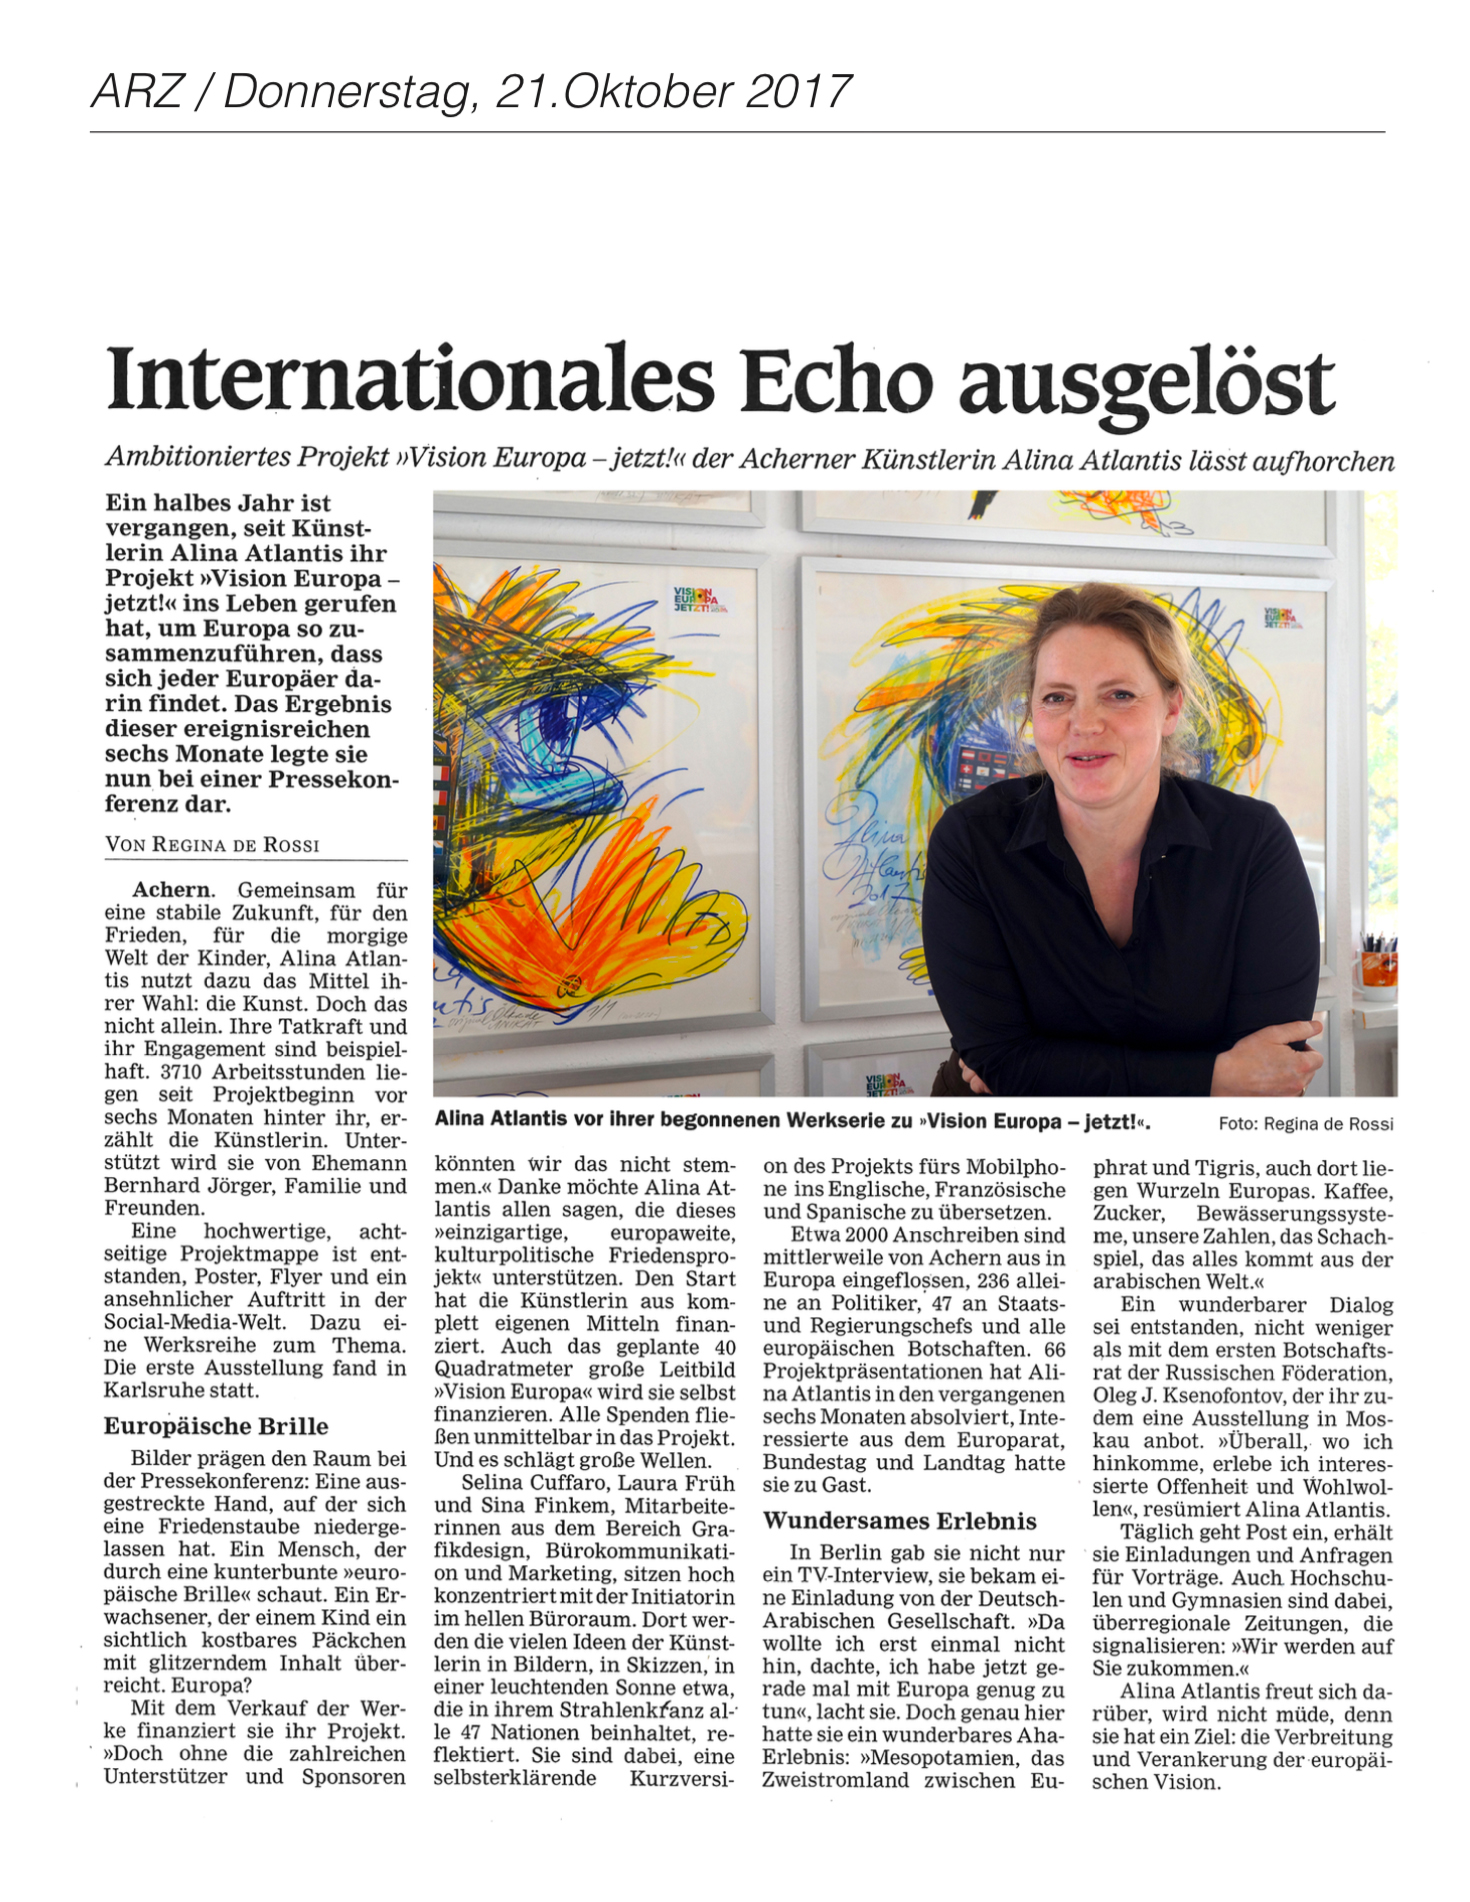 2017-10-21_ARZ_Internationales Echo ausgelöst